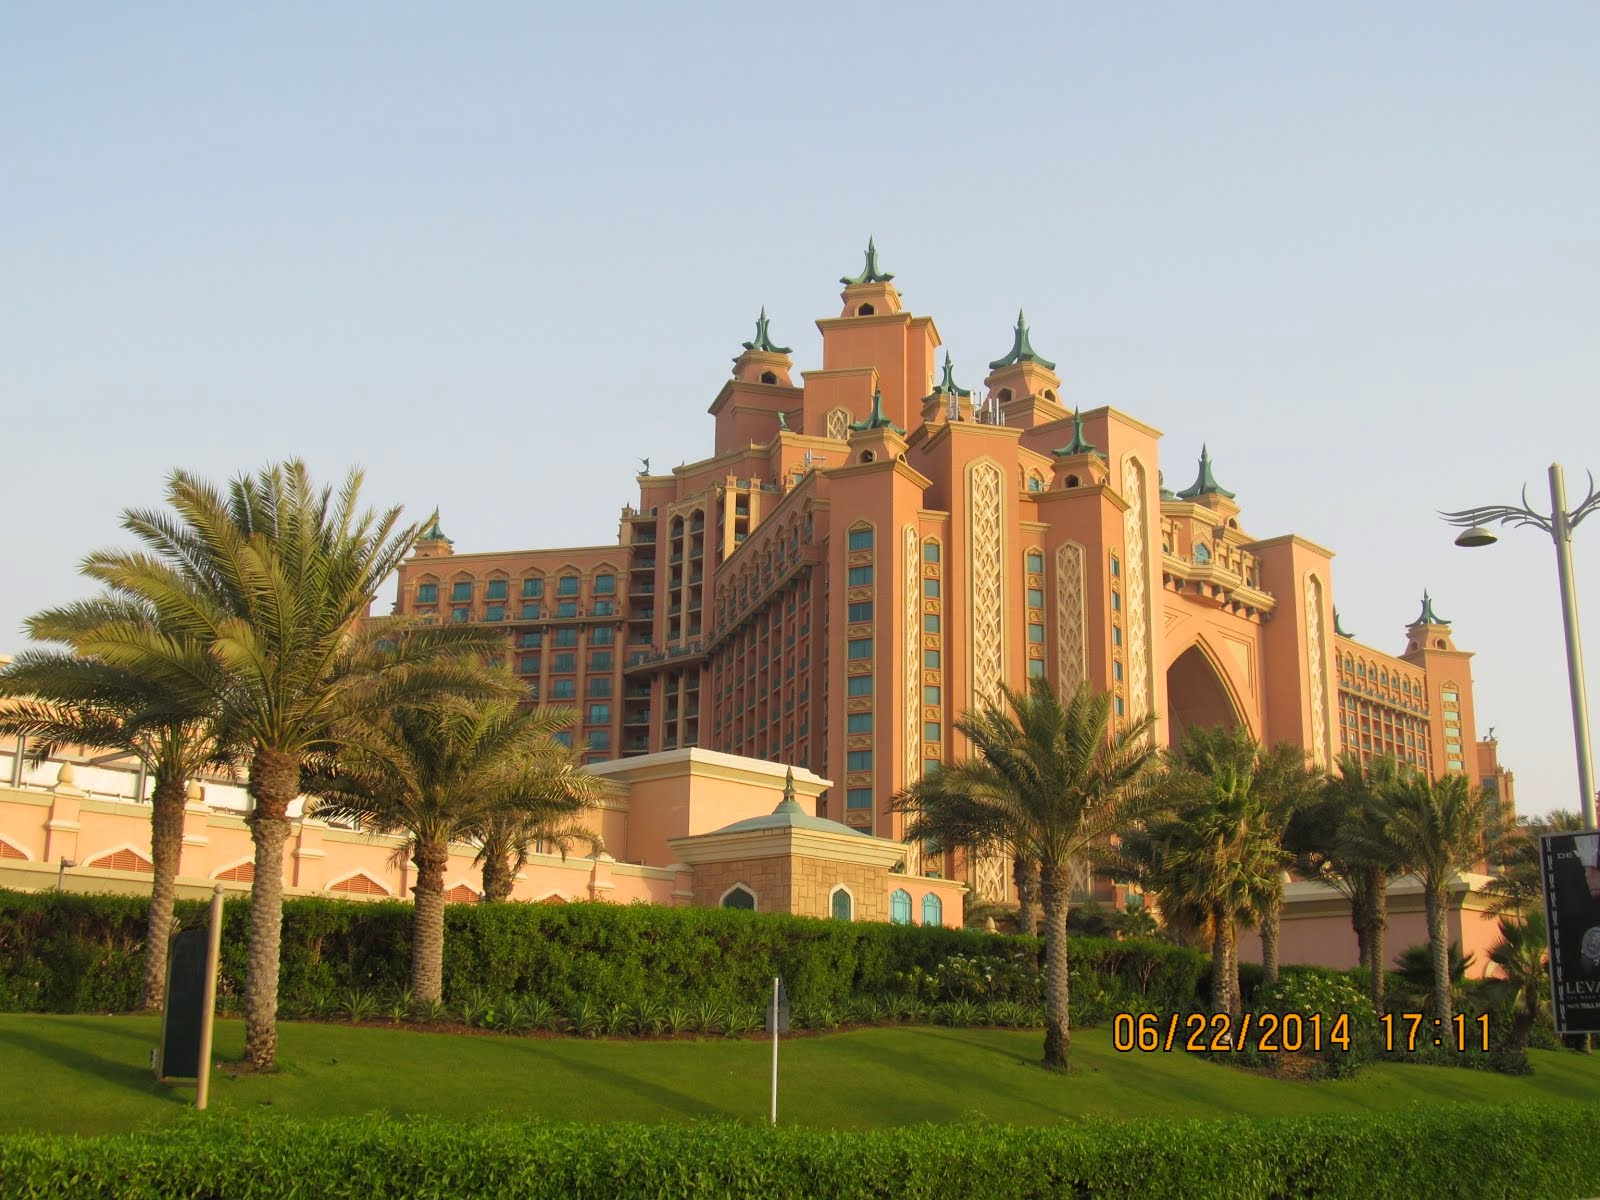 Atlantis Hotel, tip of Palm Jumeirah, Dubai, United Arab Emirates